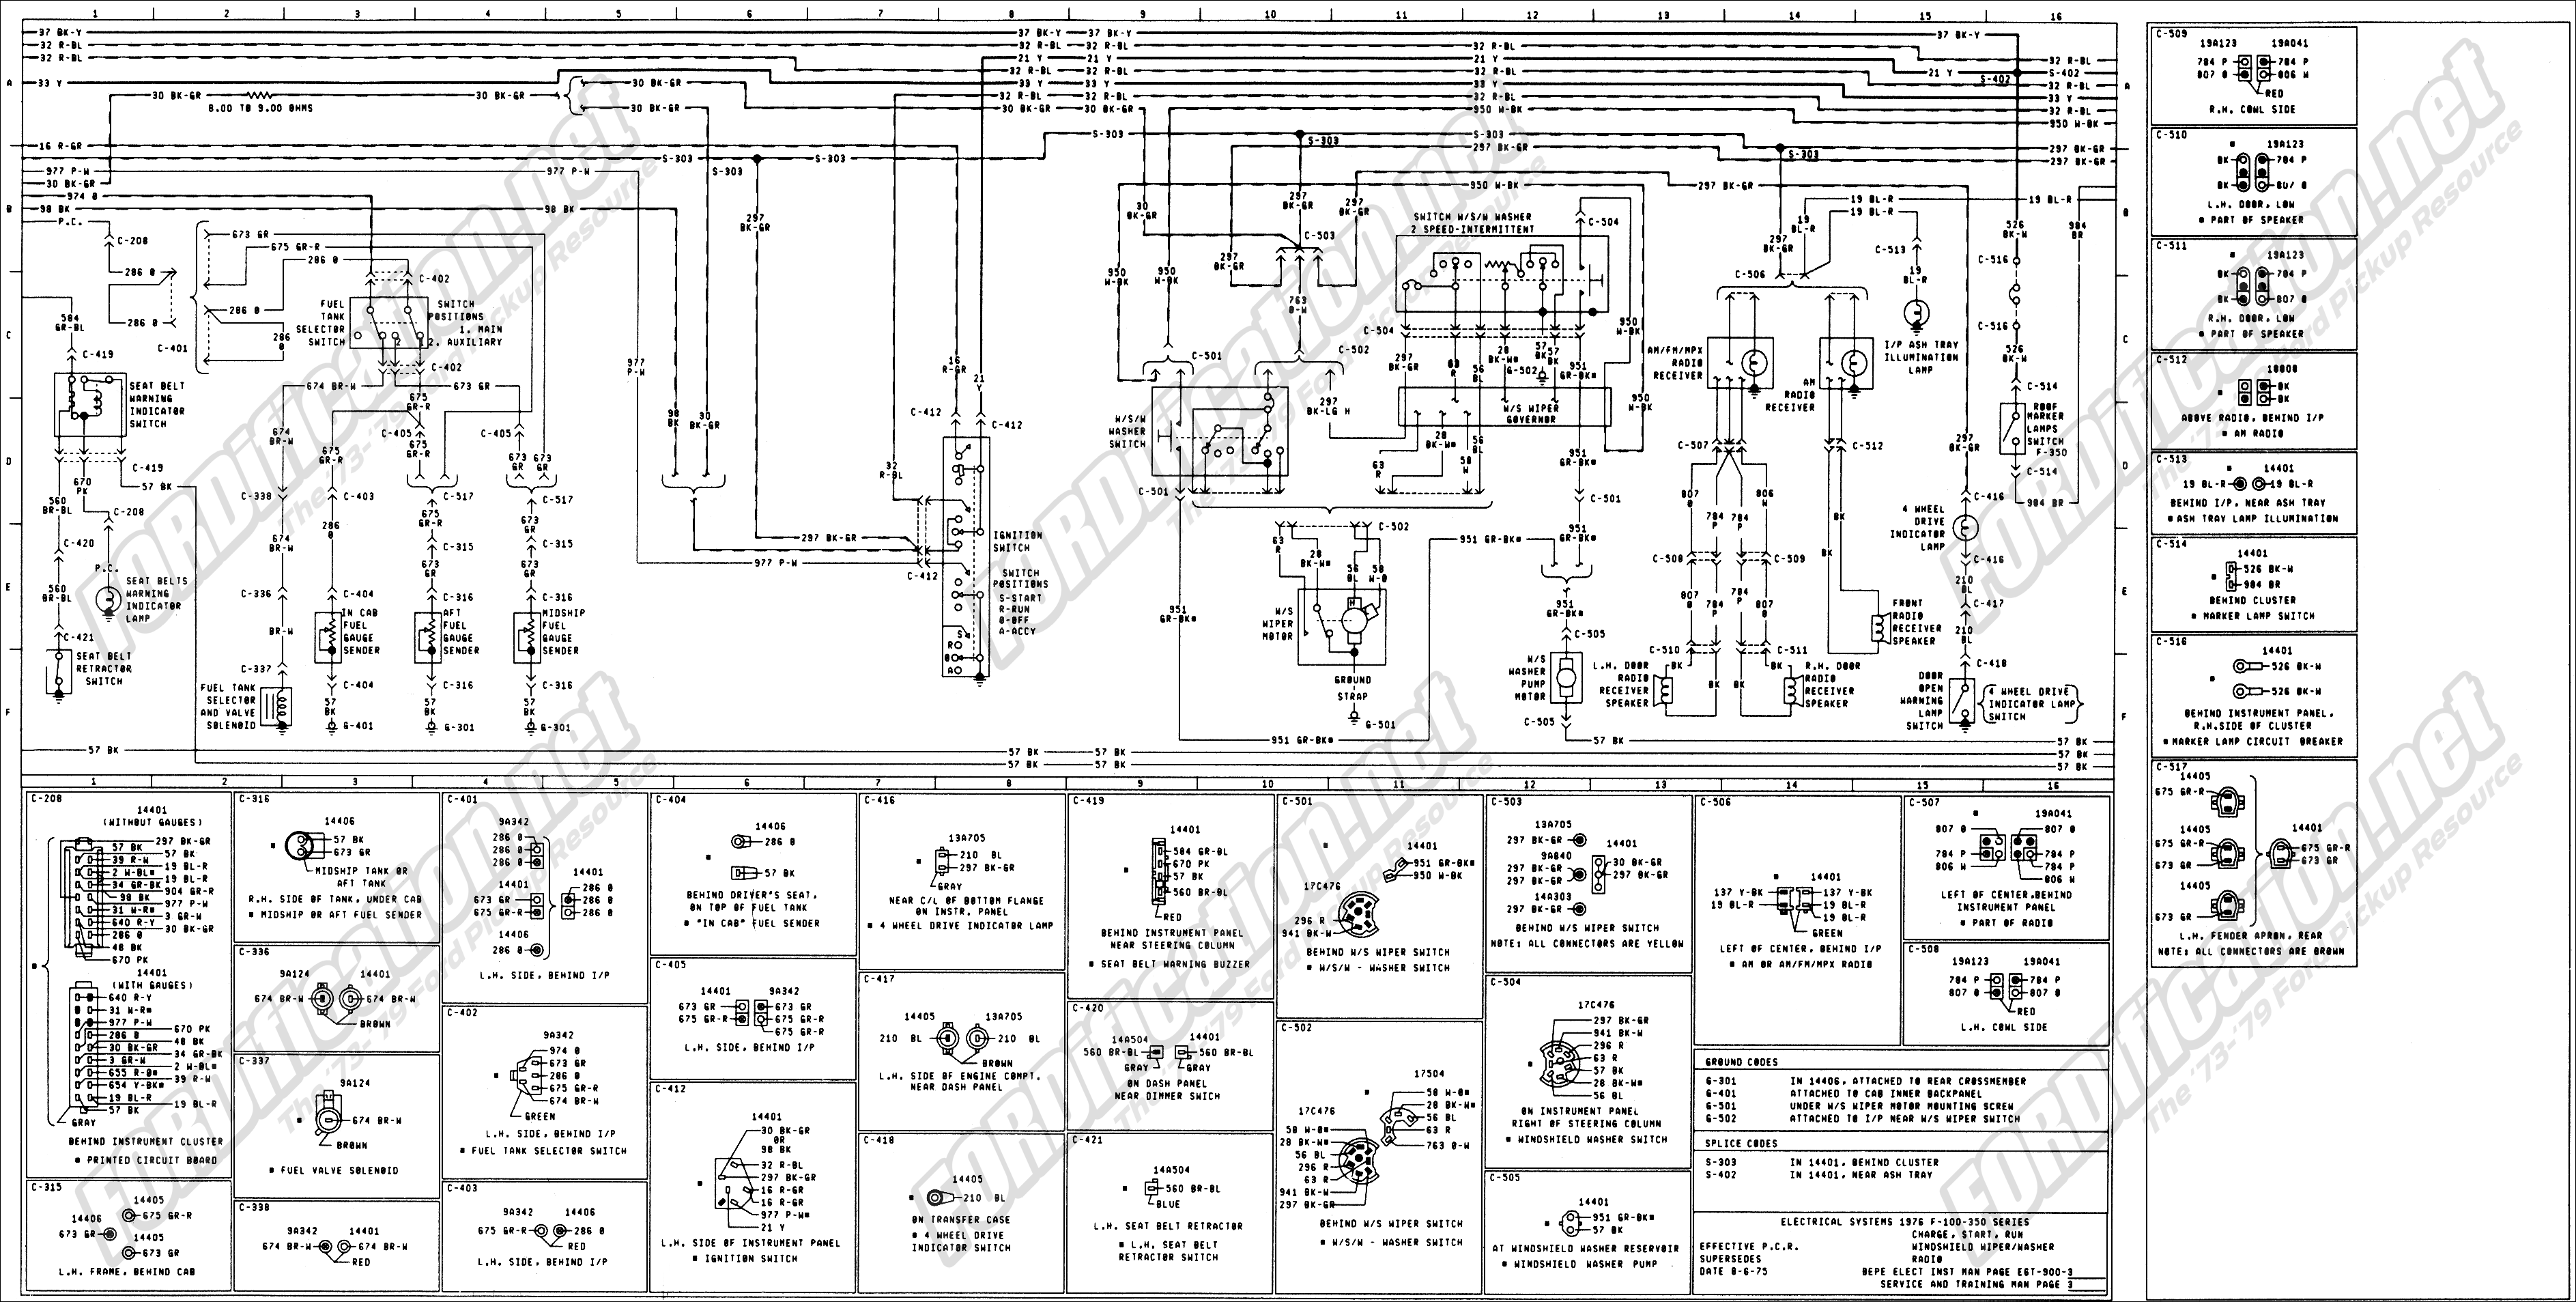 wiring_76master_3of9 ford ranger & bronco ii electrical diagrams at the ranger station 1979 ford truck fuse box diagram at reclaimingppi.co